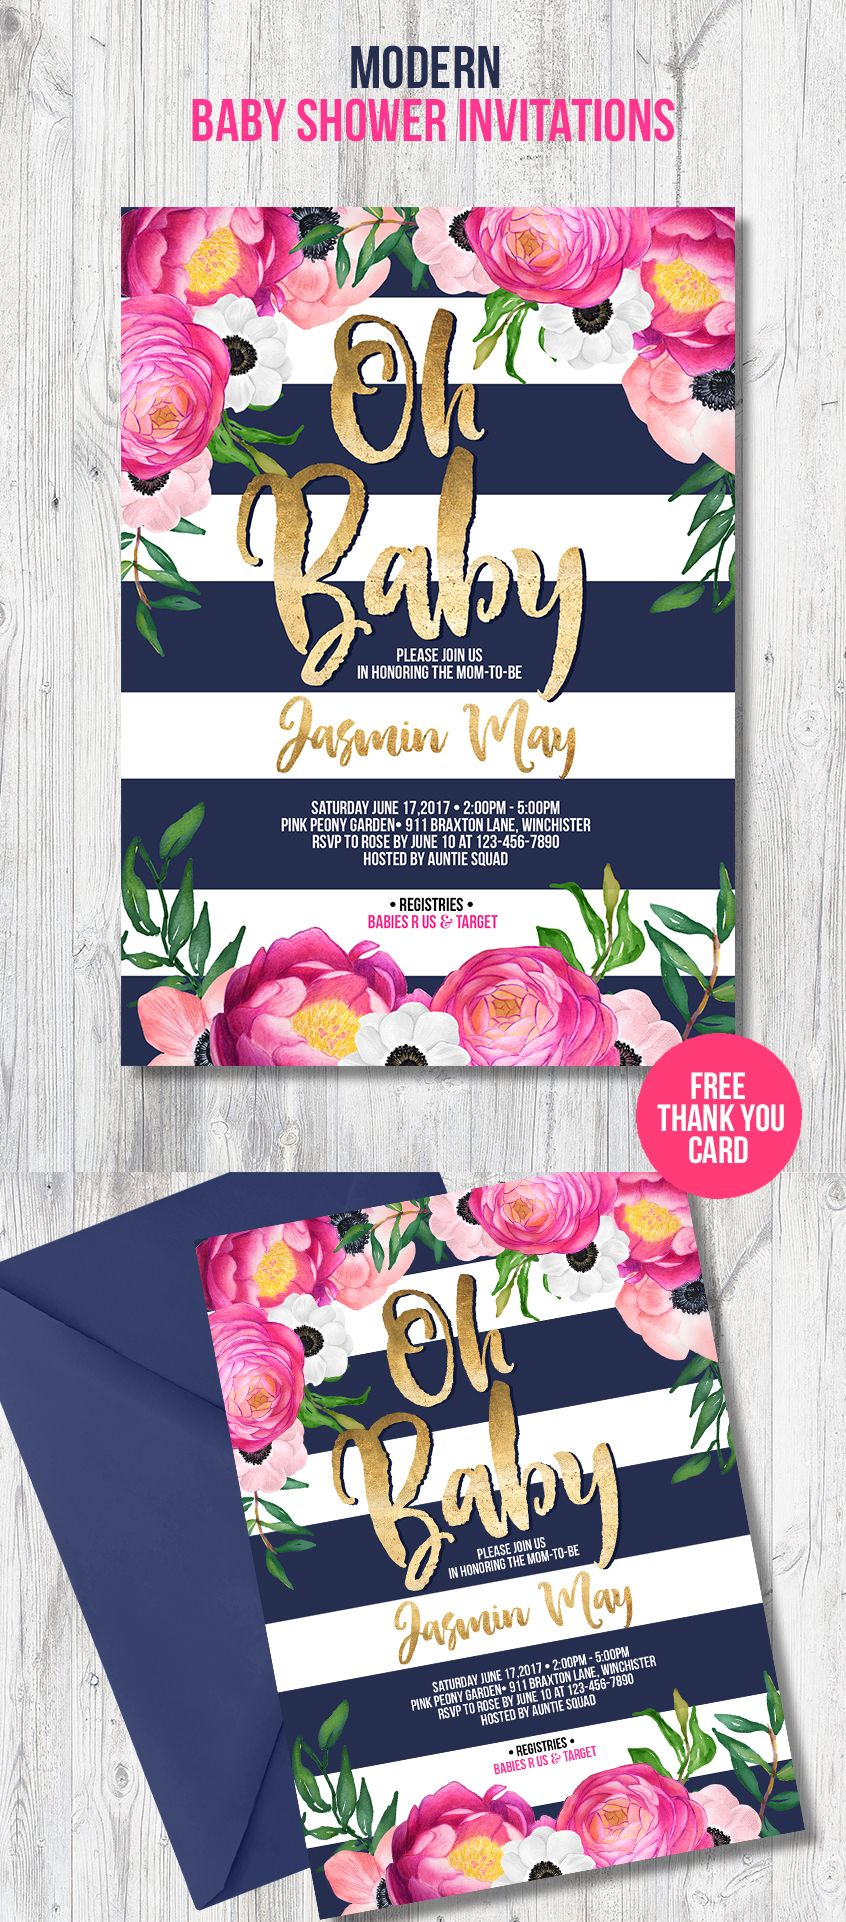 Modern baby shower invitation for your trendy party theme with navy ...